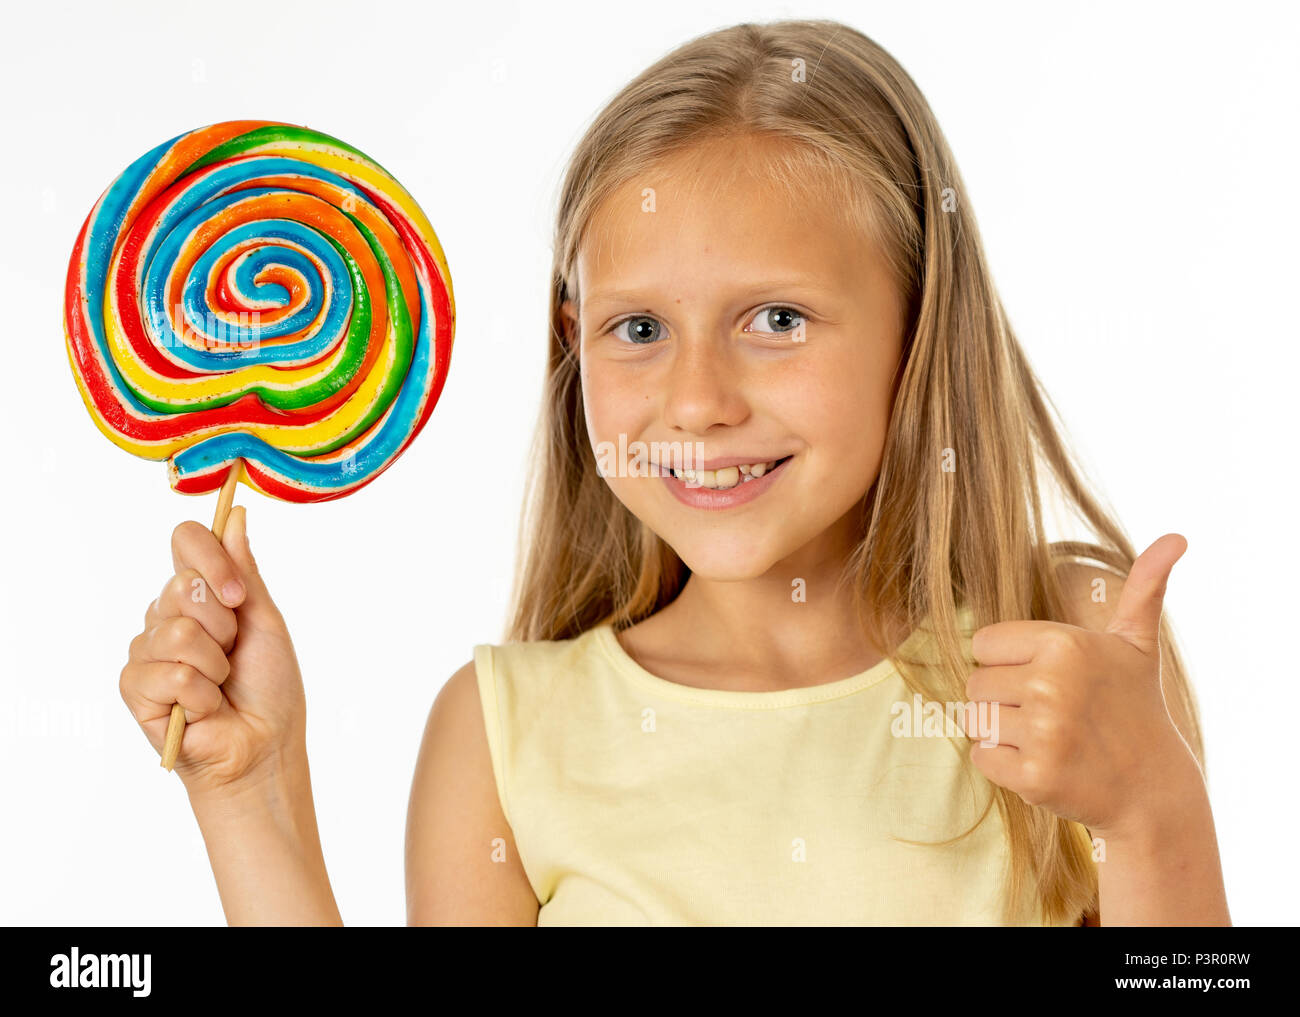 how to eat a lollipop